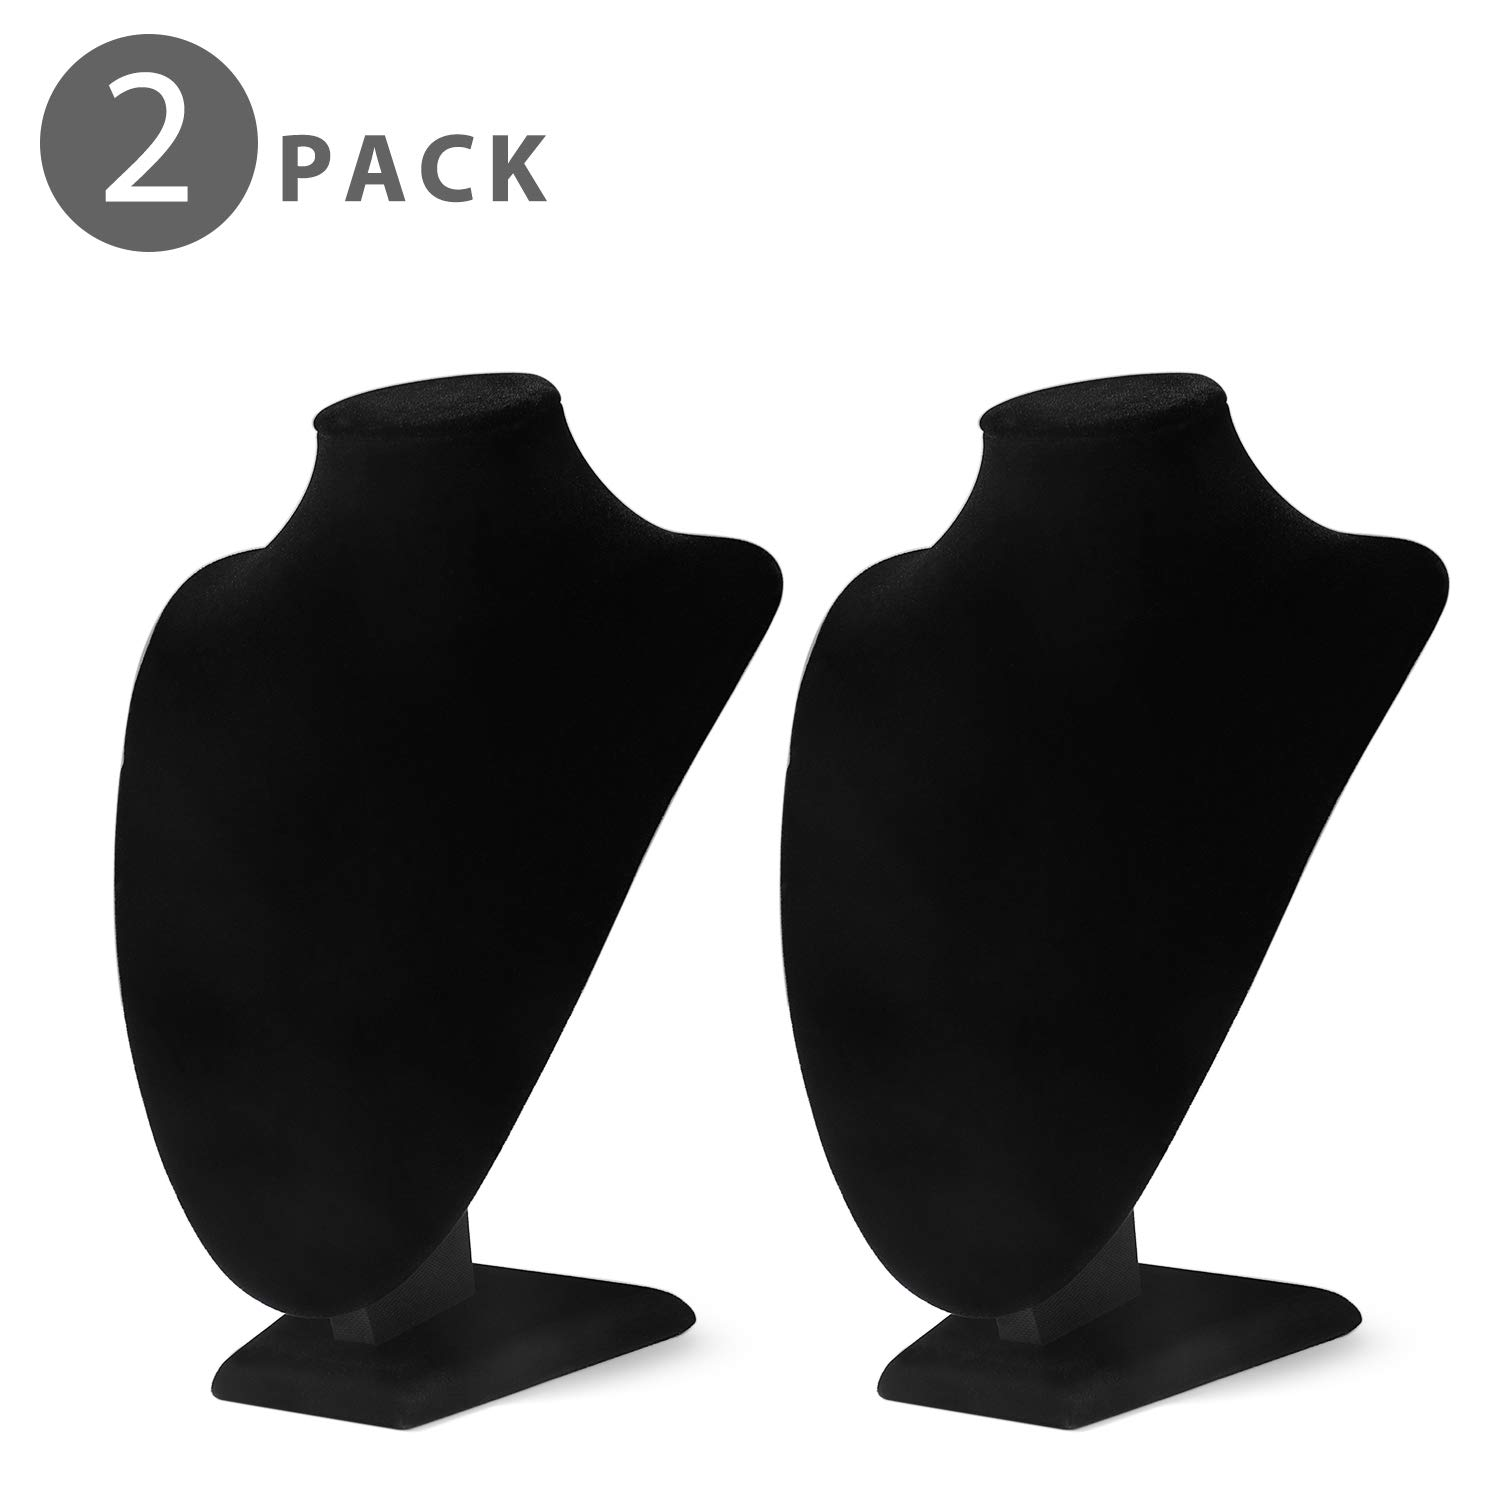 Flexzion 2 Pack Velvet Necklace Jewelry Display Bust Stand - Freestanding Pendant Chain Chokers Lockets Holder Organizer Storage Hanging Supplies 9.5'' Tall x 7'' x 5.3'' for Women Girl Retail (Black)